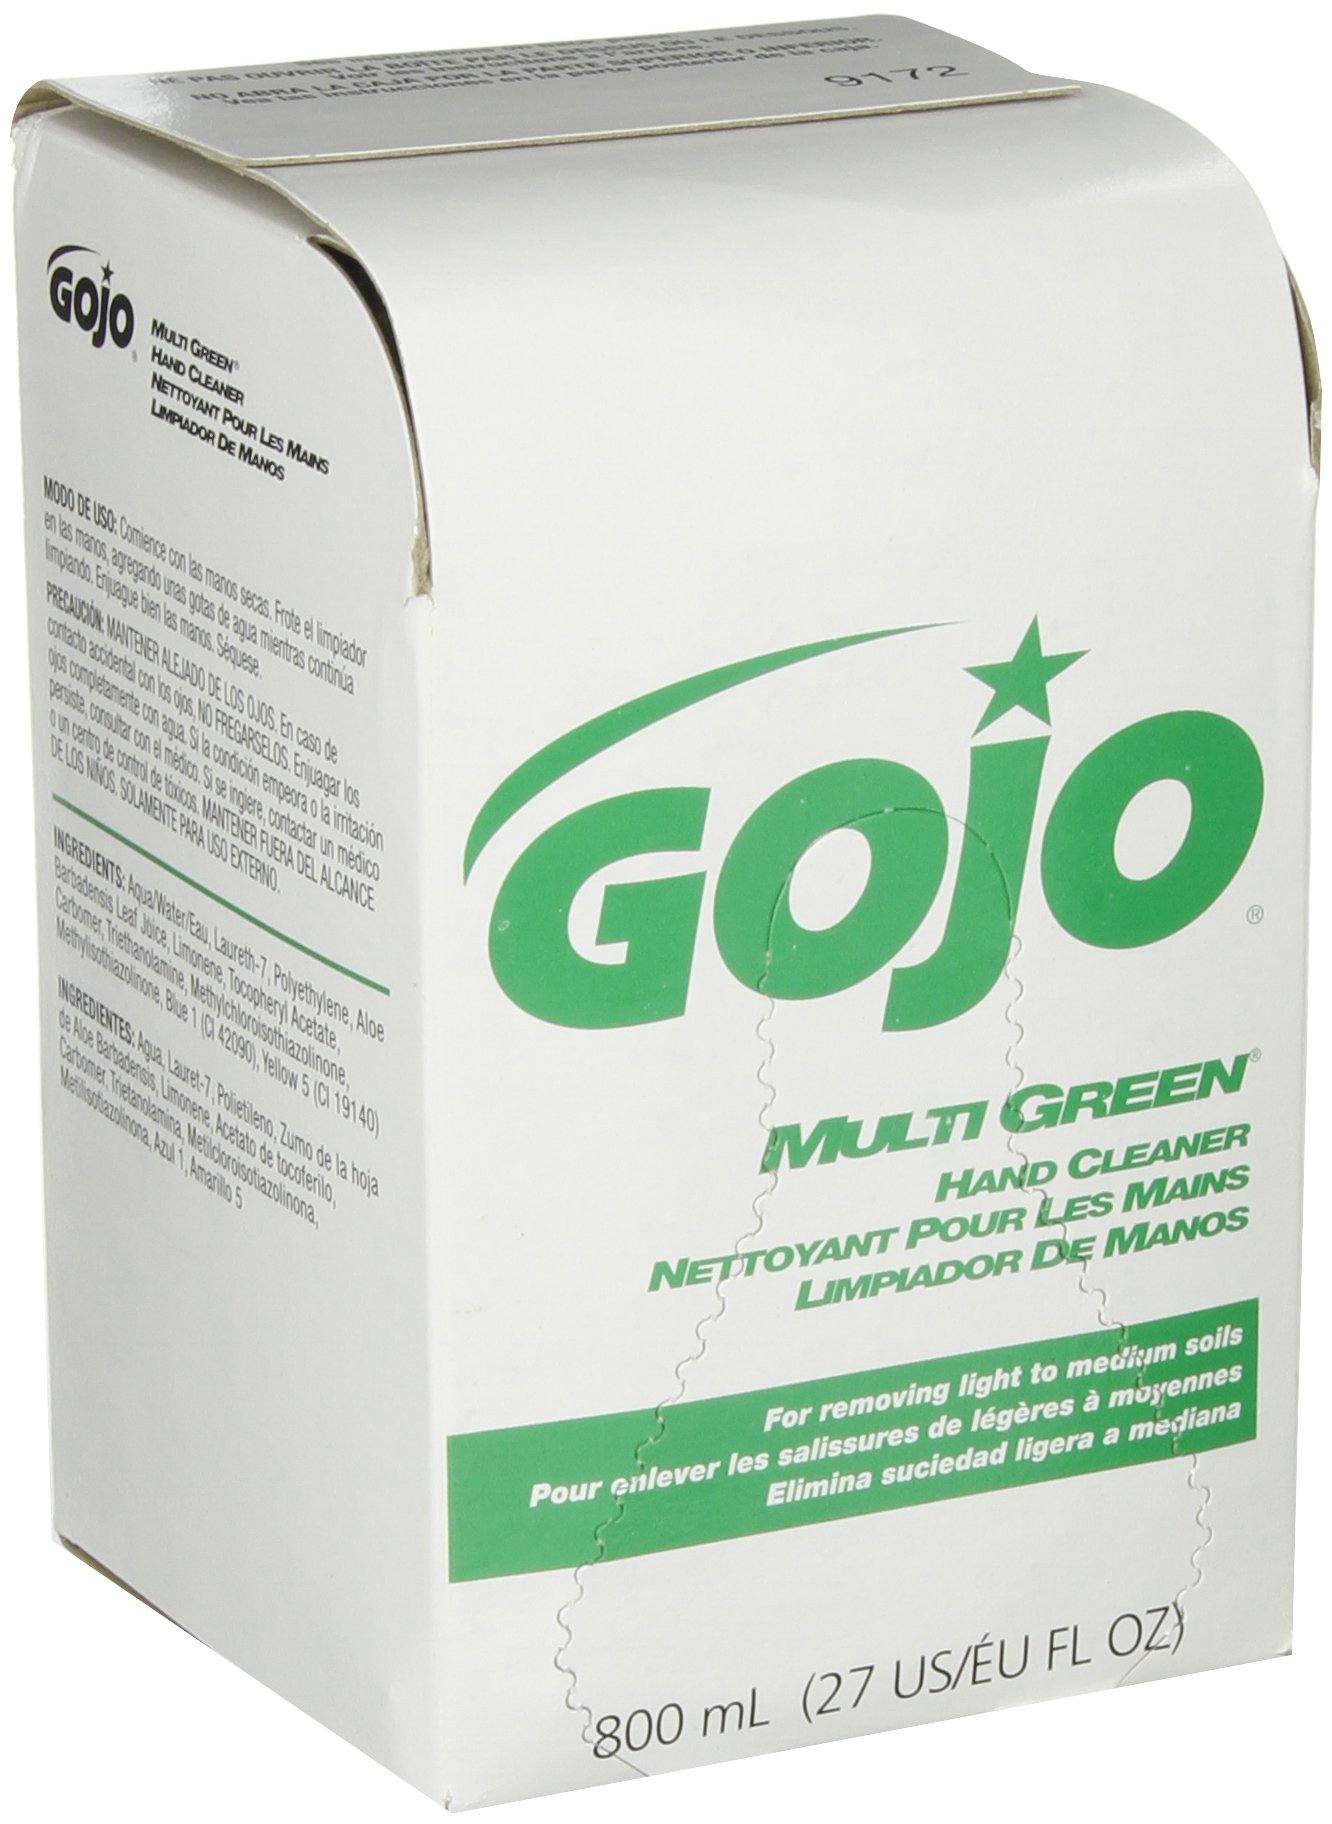 GOJO 800 Series MULTI GREEN Hand Cleaner, with Natural Pumice Scrubbers, 800 mL Hand Cleaner Refill for 800 Series Bag-in-Box Push-Style Dispenser (Pack of 12) - 9172-12